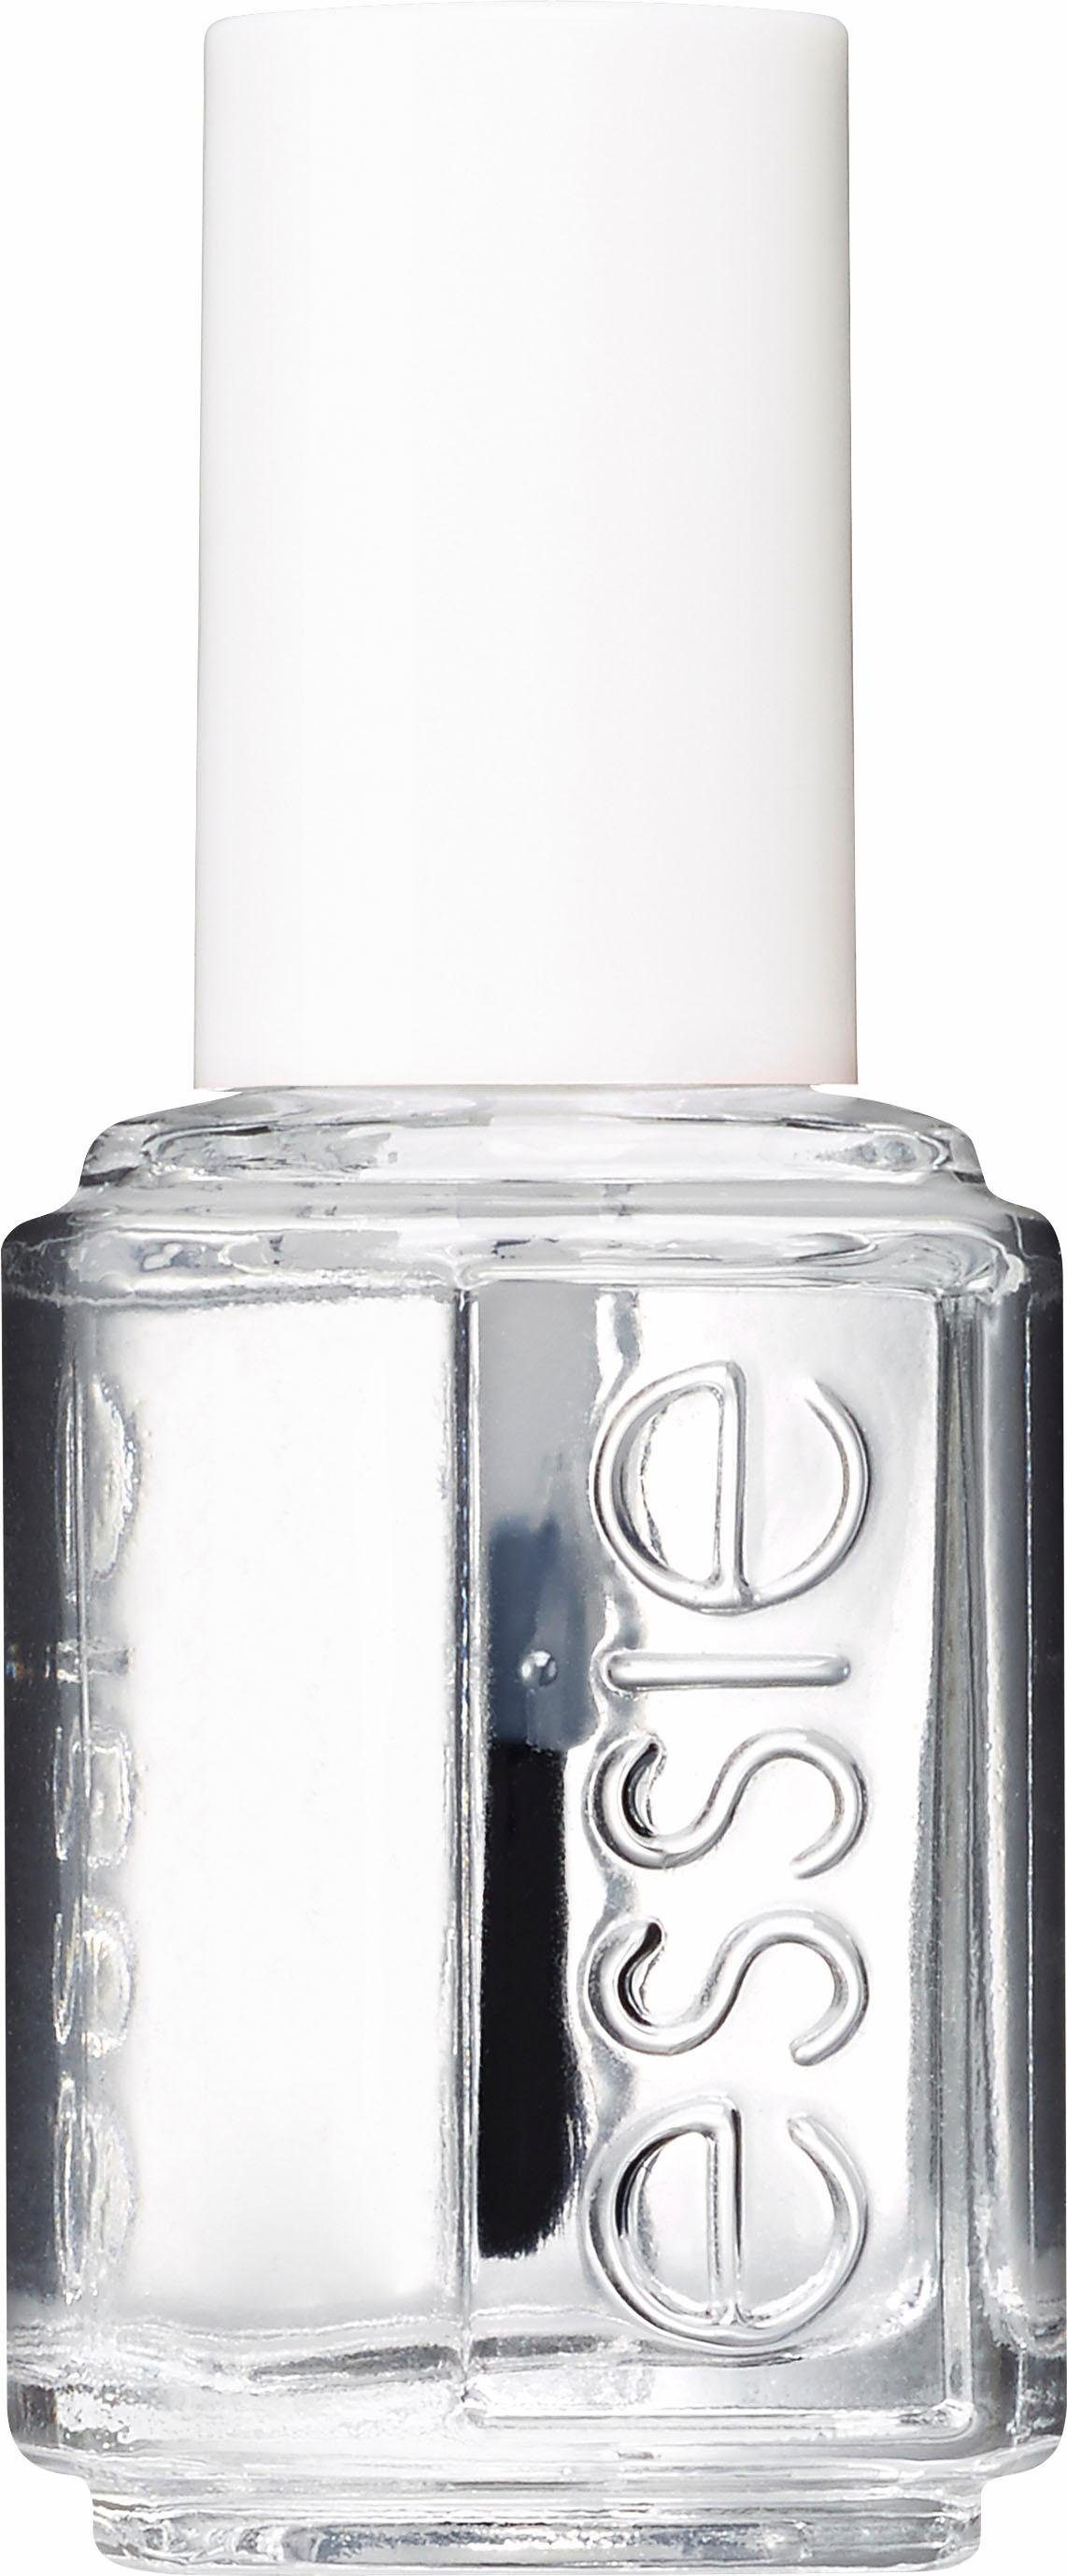 Essie, »Good To Go«, Top Coat